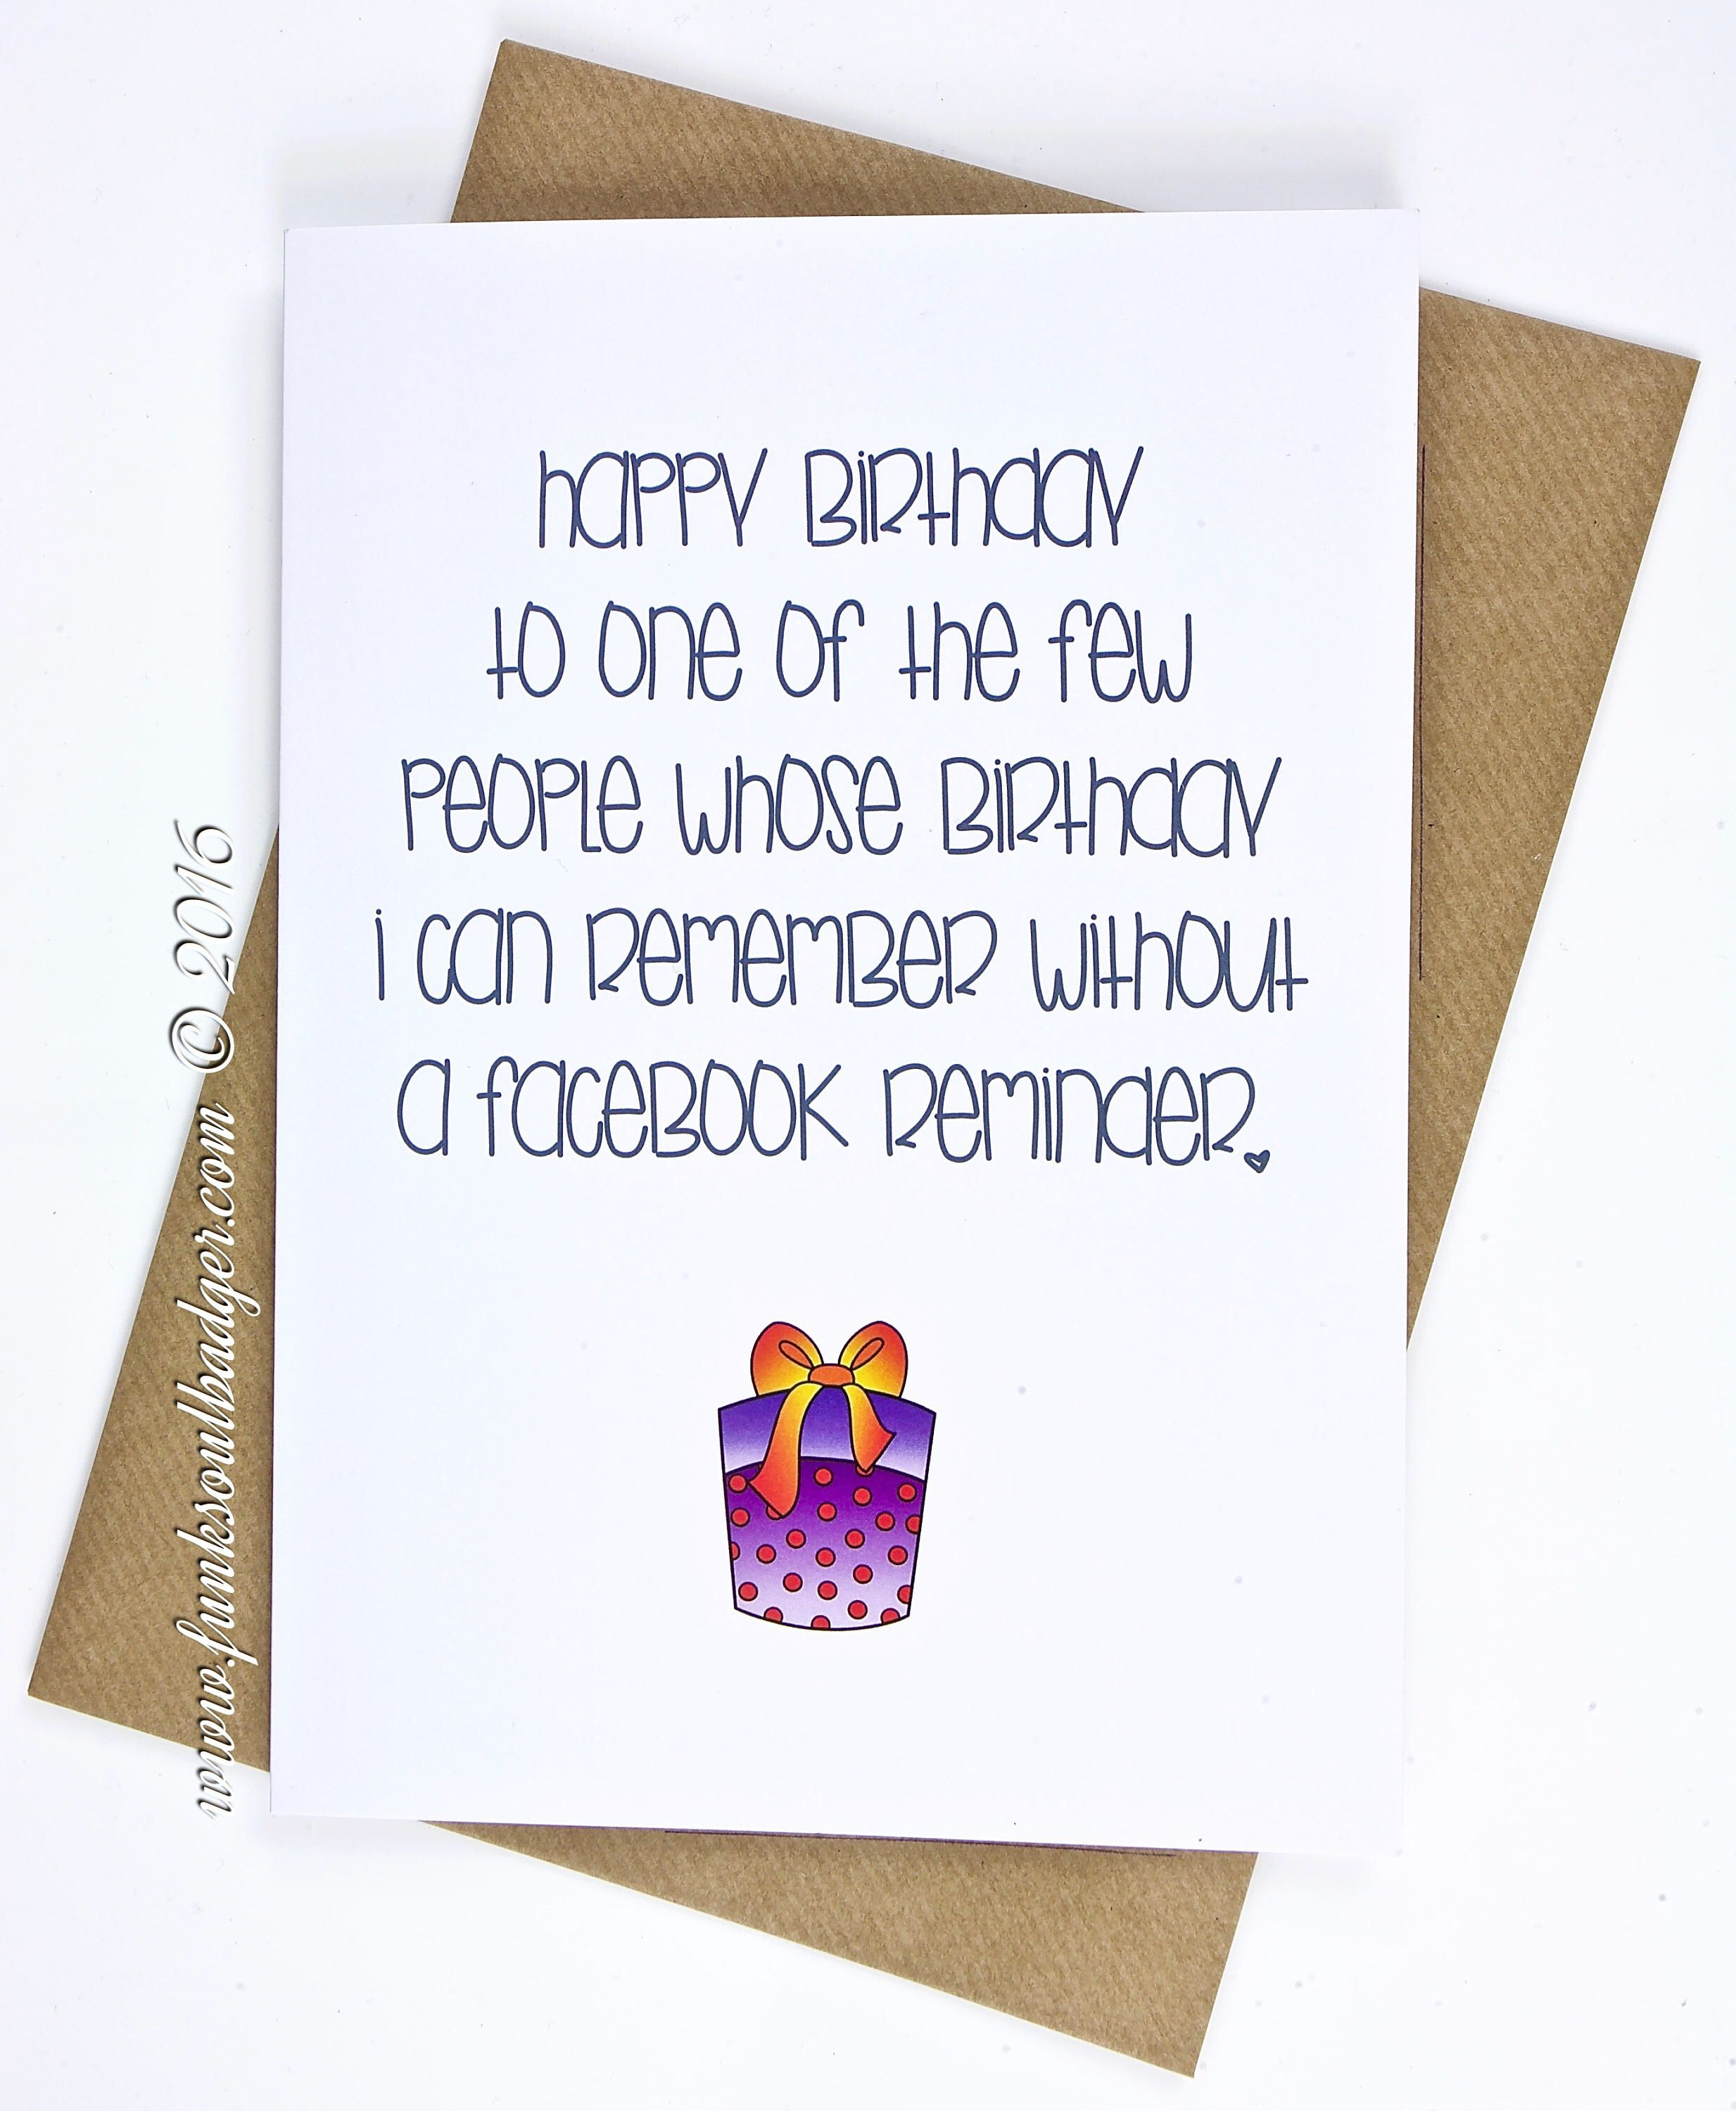 Happy Birthday Of Course I Remembered Etsy Shop Funny Birthday Card Remember Without A Facebook Reminder Papergoods White Birthday Birthdaycards